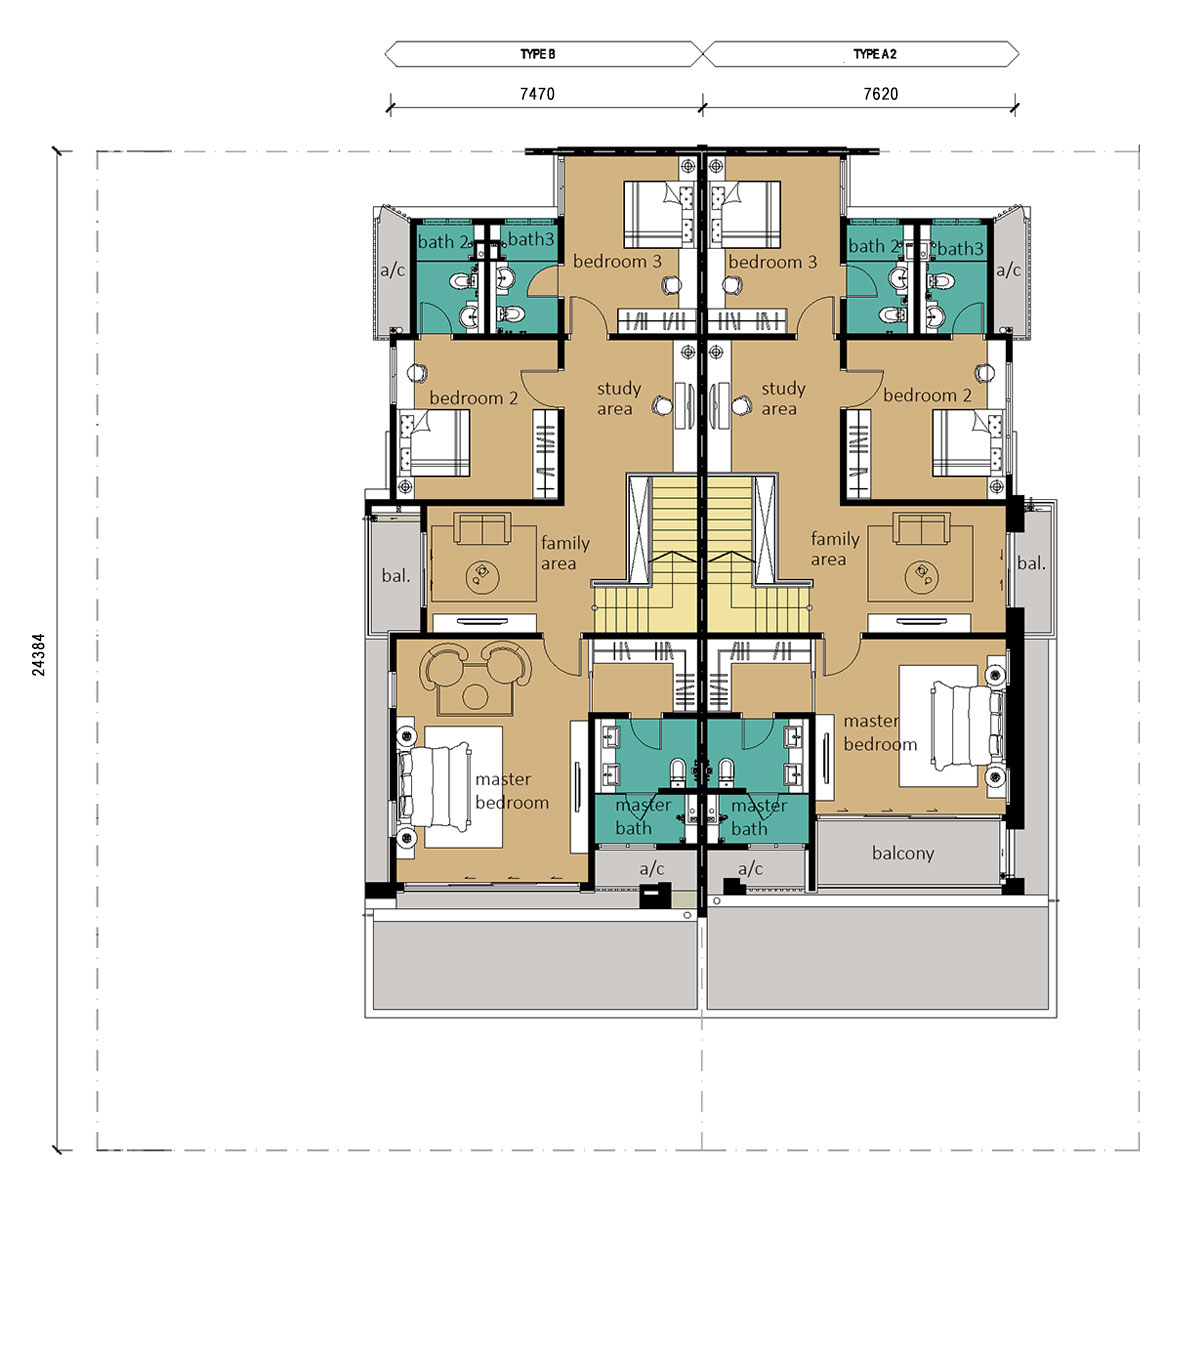 2 Storey - Cluster - Type A2 & B - First Floor